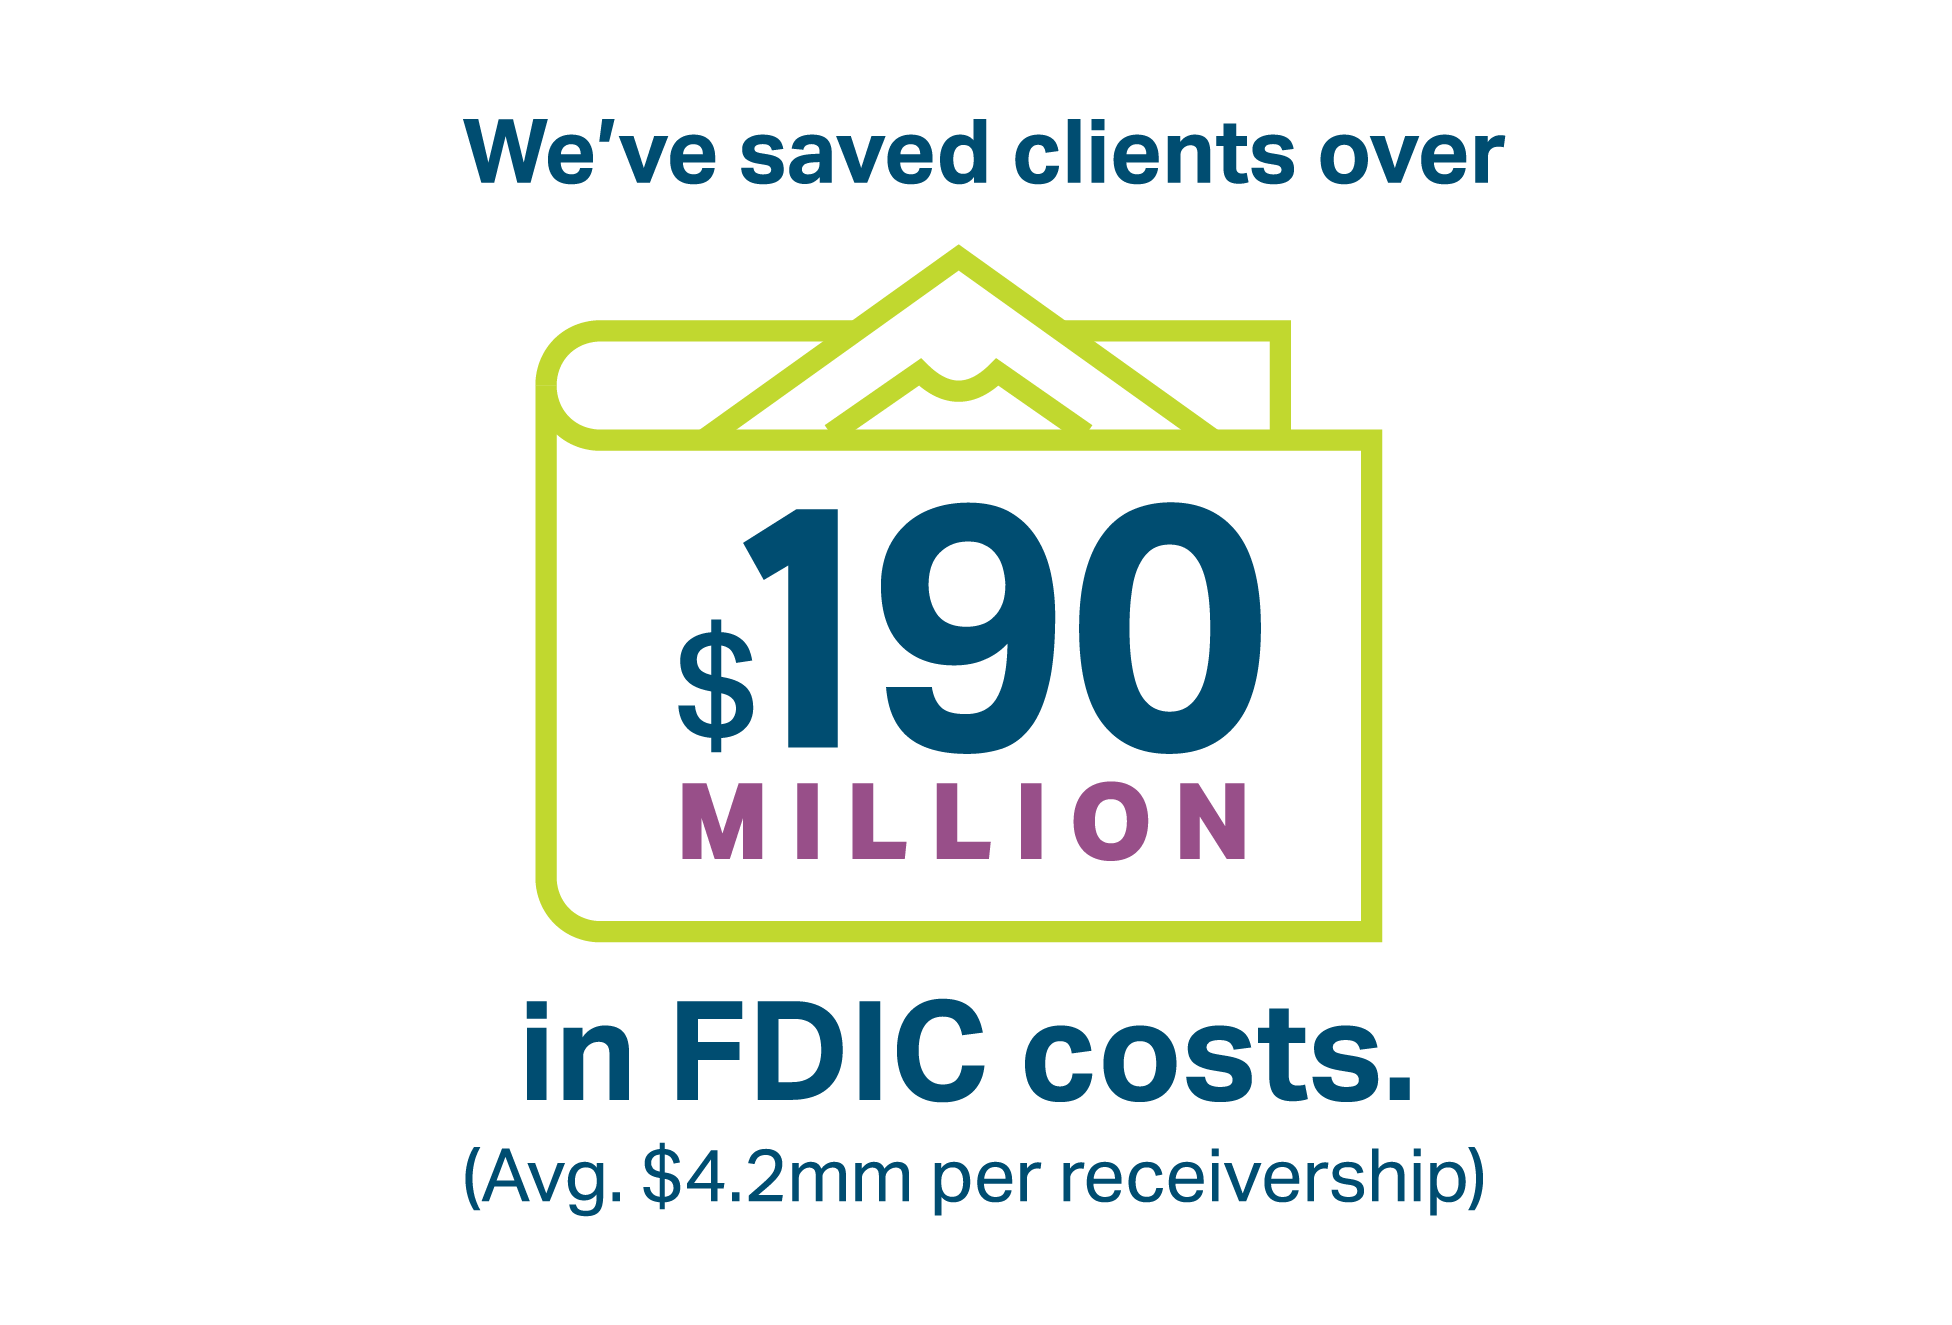 DD&F has saved clients over $190 million in FDIC costs